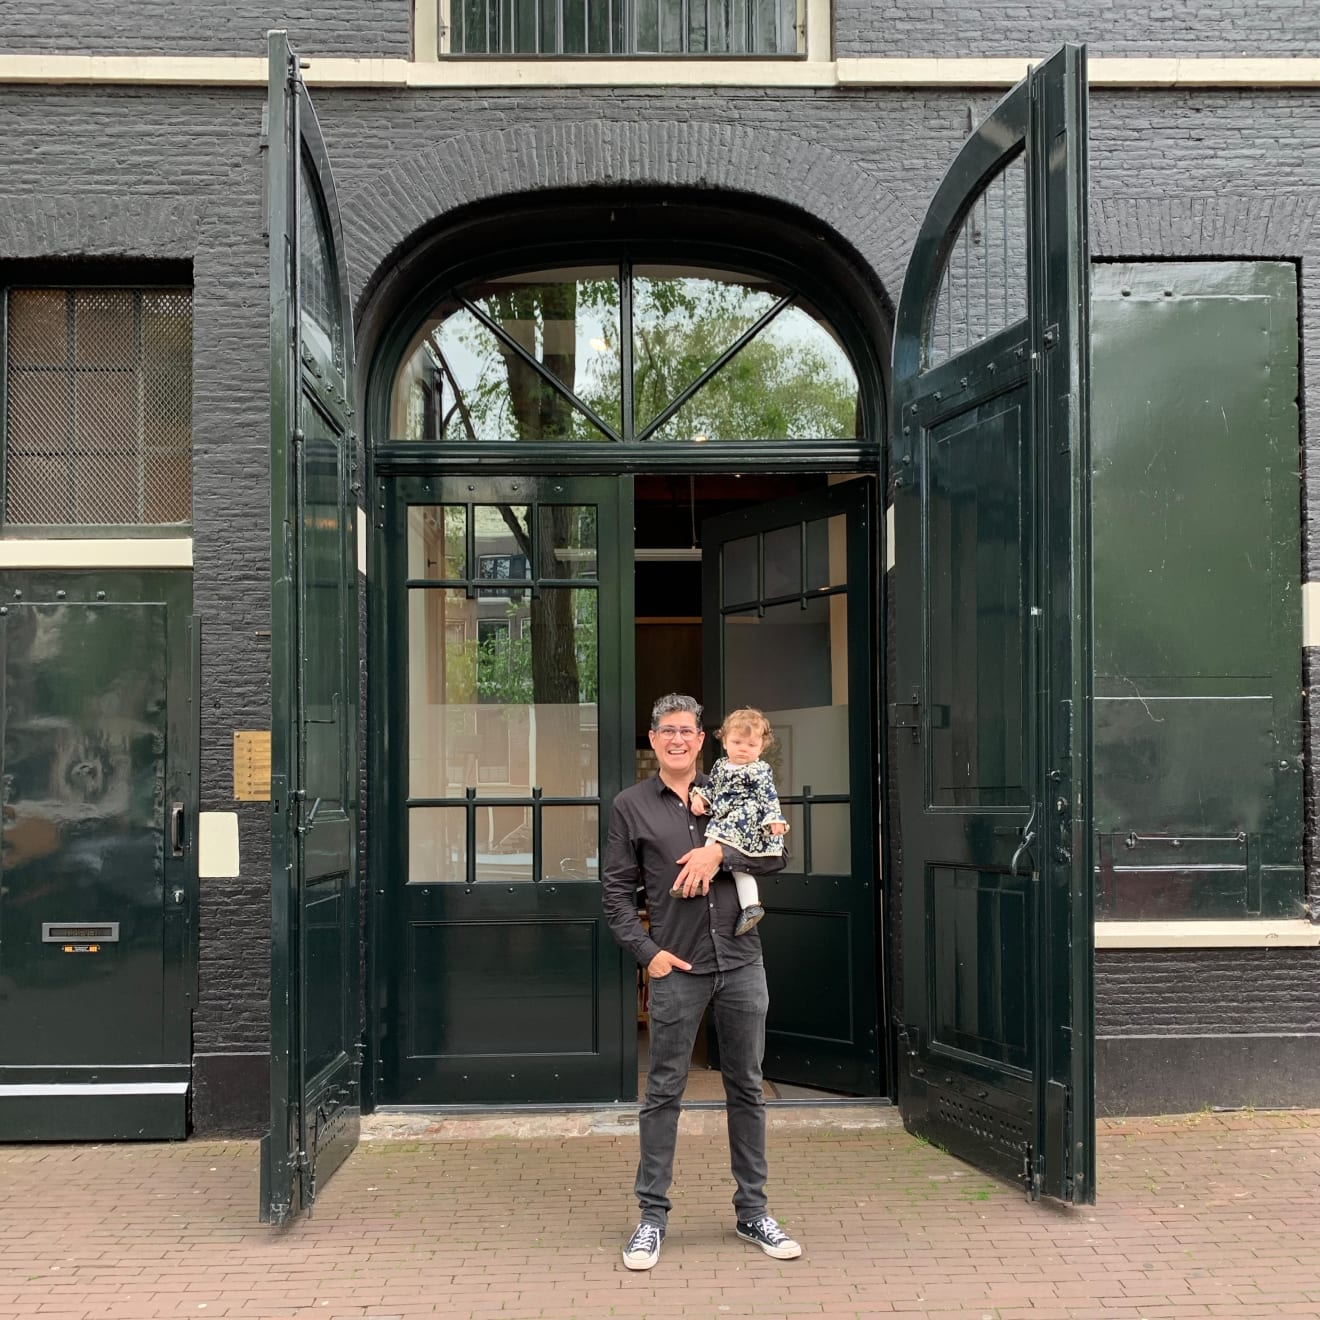 The Garage, Amsterdam